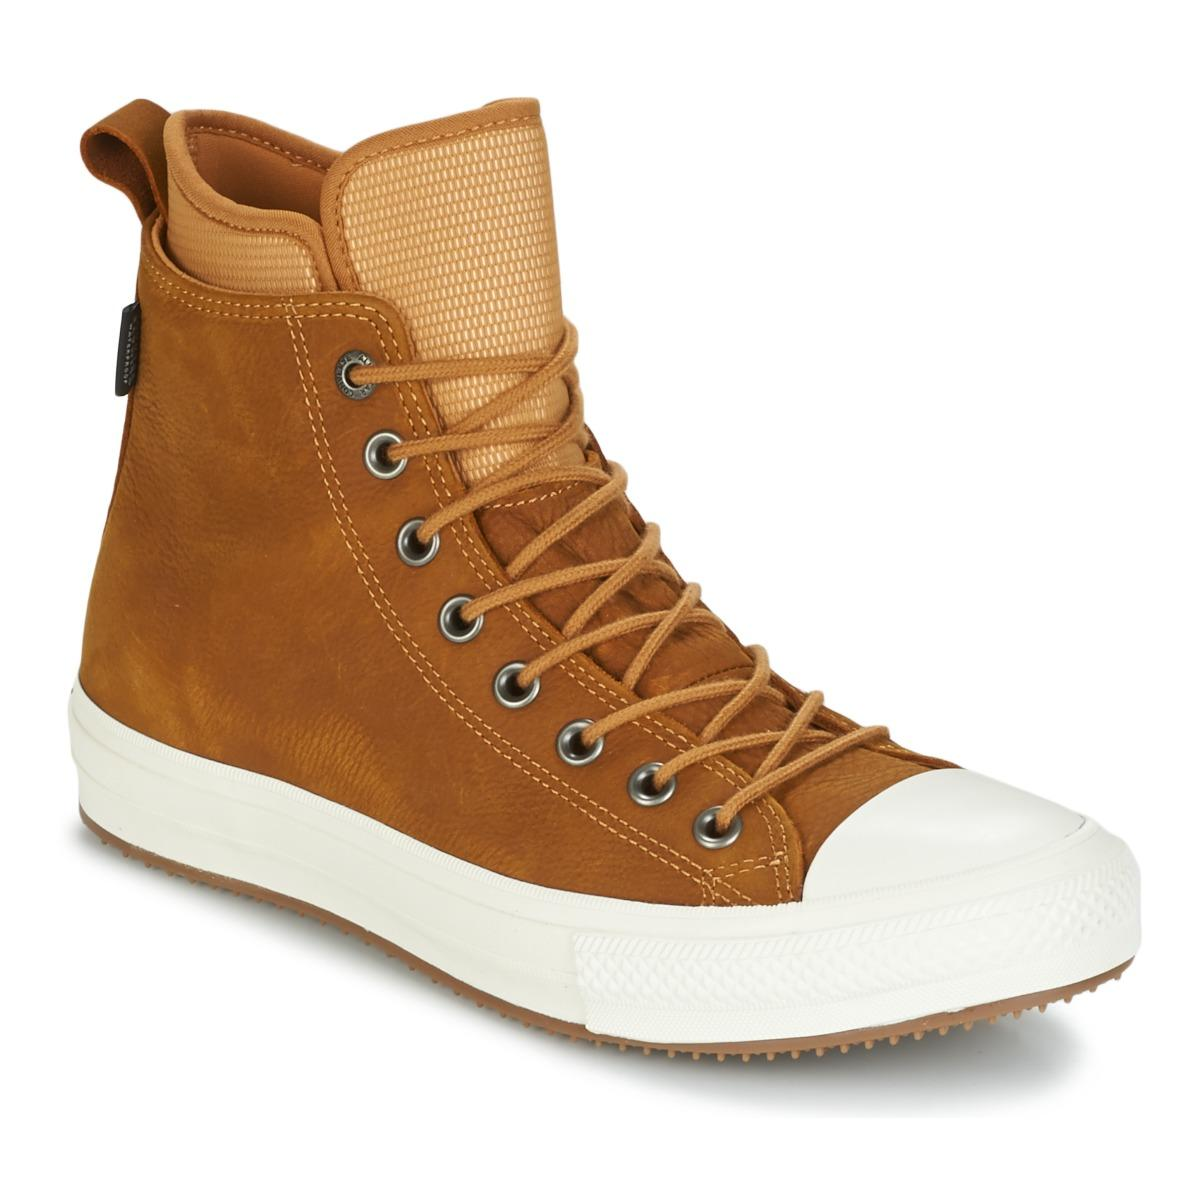 cab219d1a18b Converse. Men s Brown Chuck Taylor Wp Boot Nubuck Hi Raw Sugar egret gum  Shoes (high-top ...